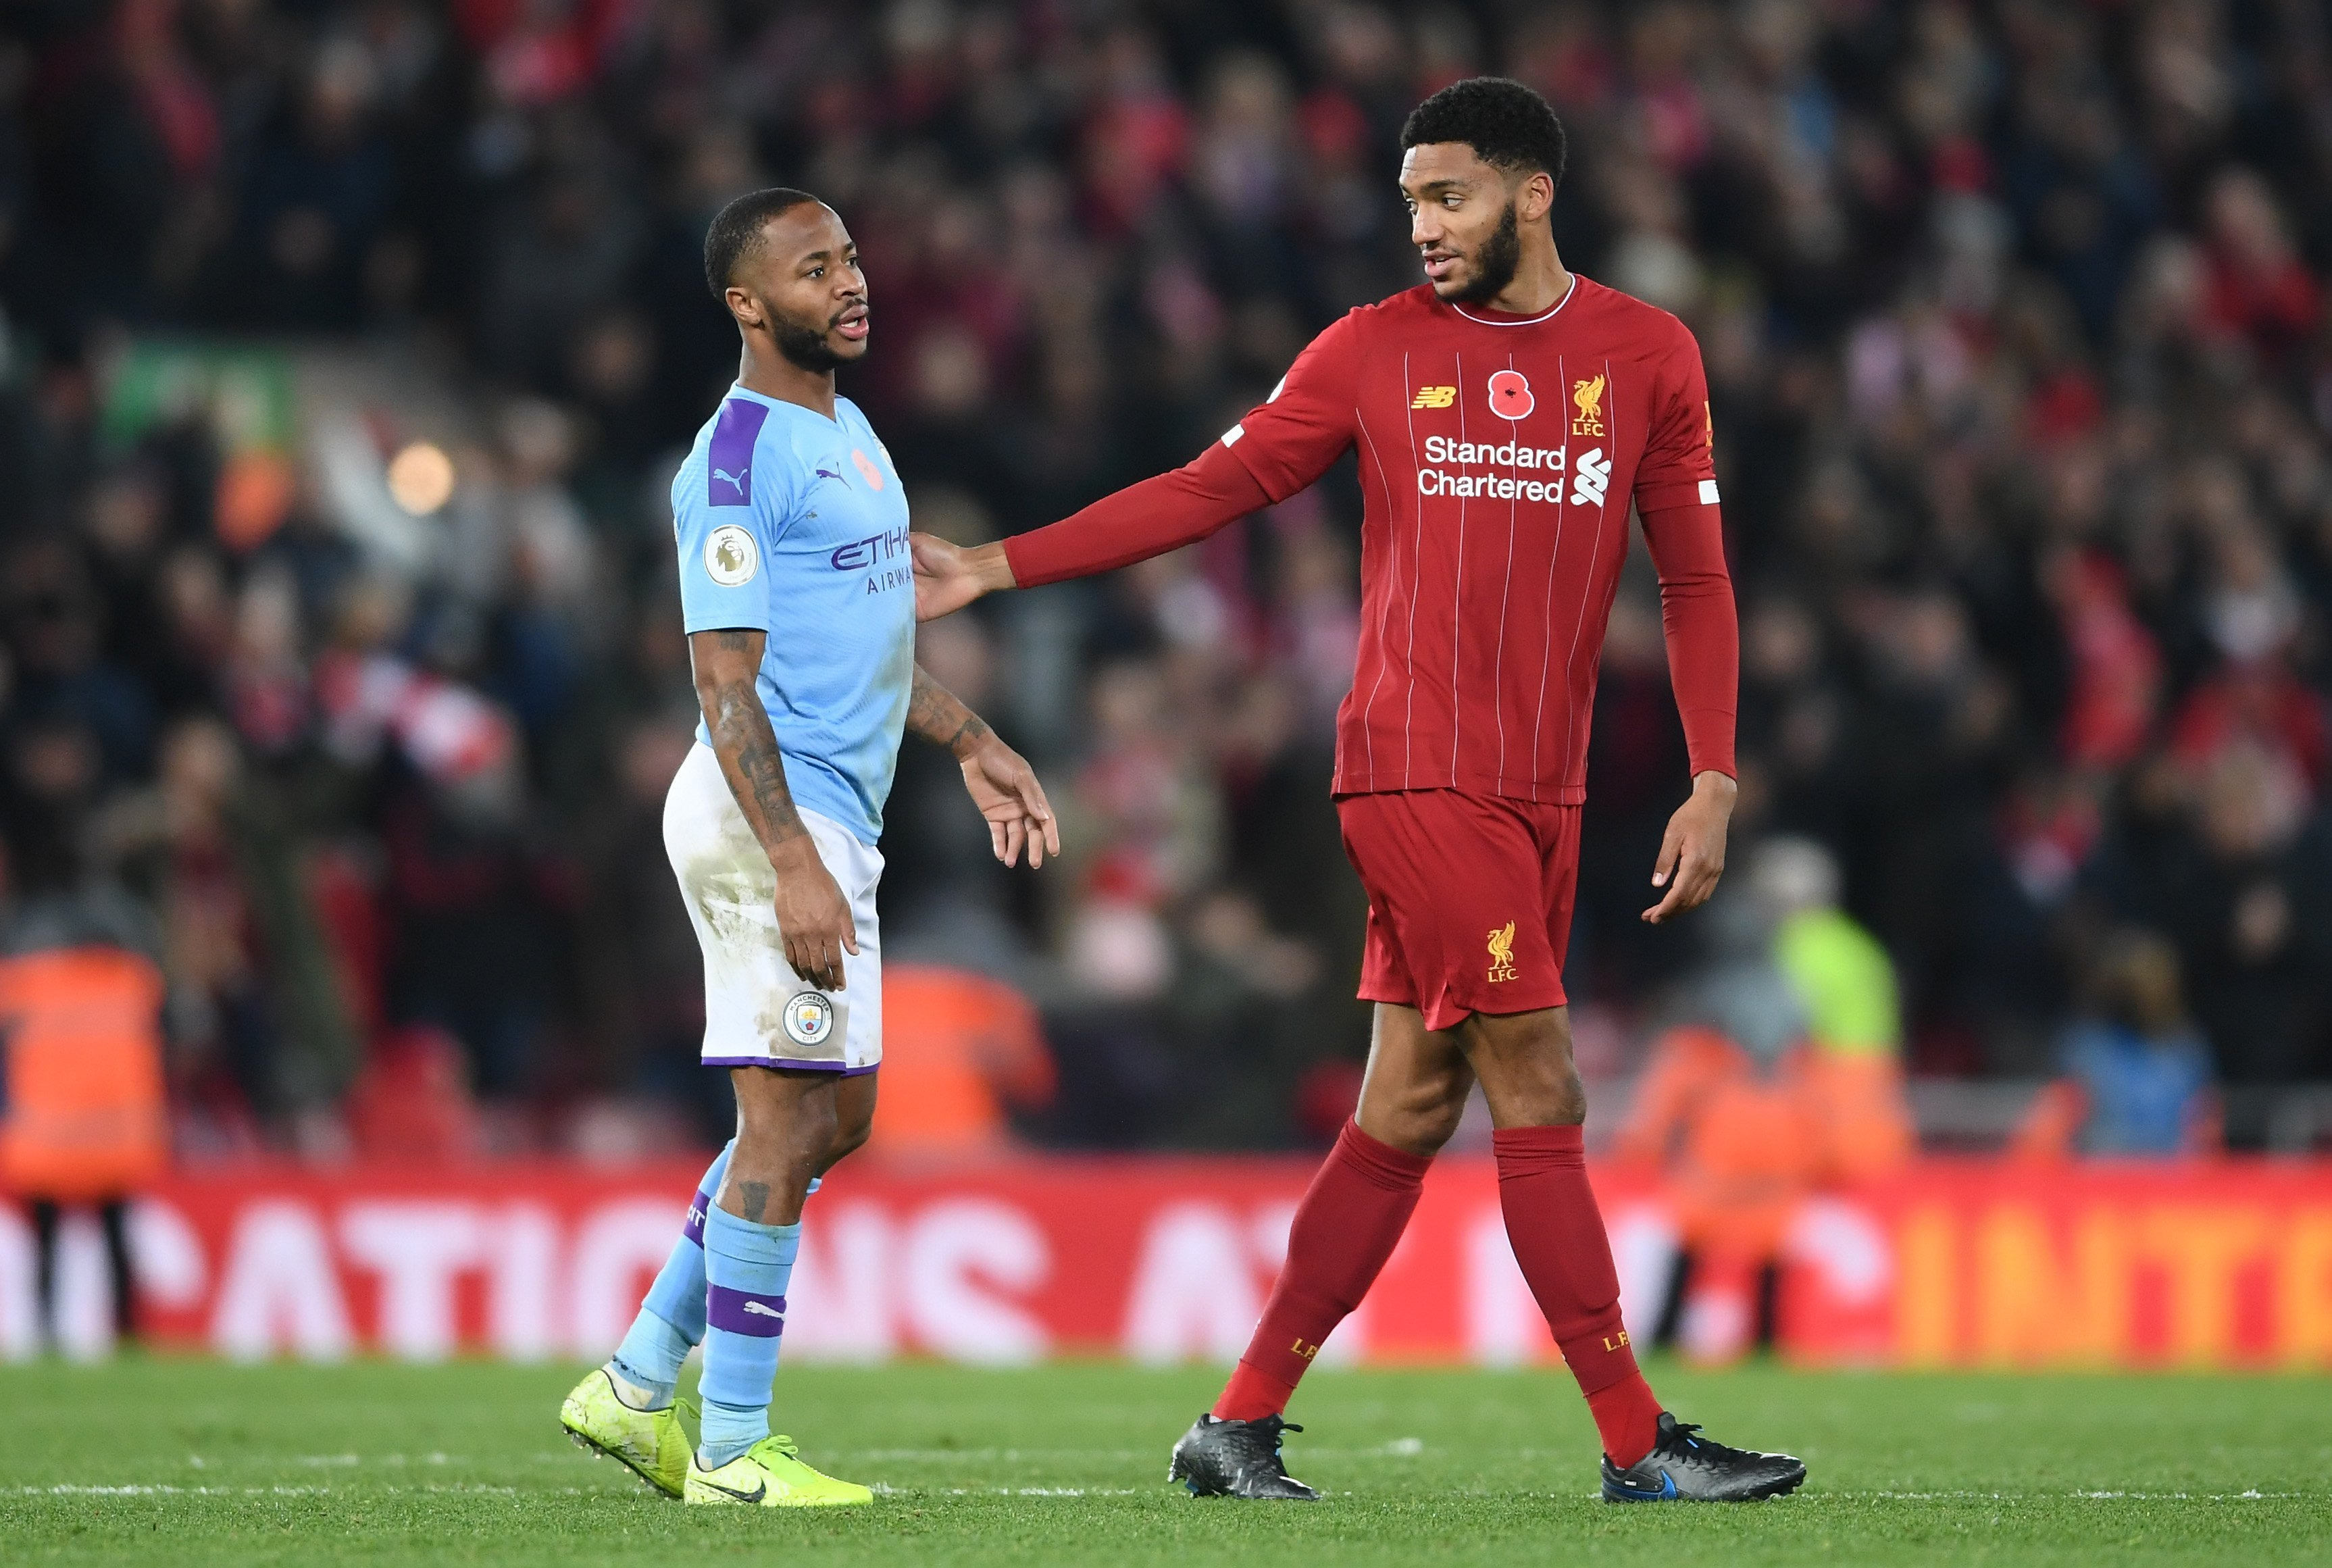 Raheem Sterling dropped by England after altercation with teammate Joe Gomez